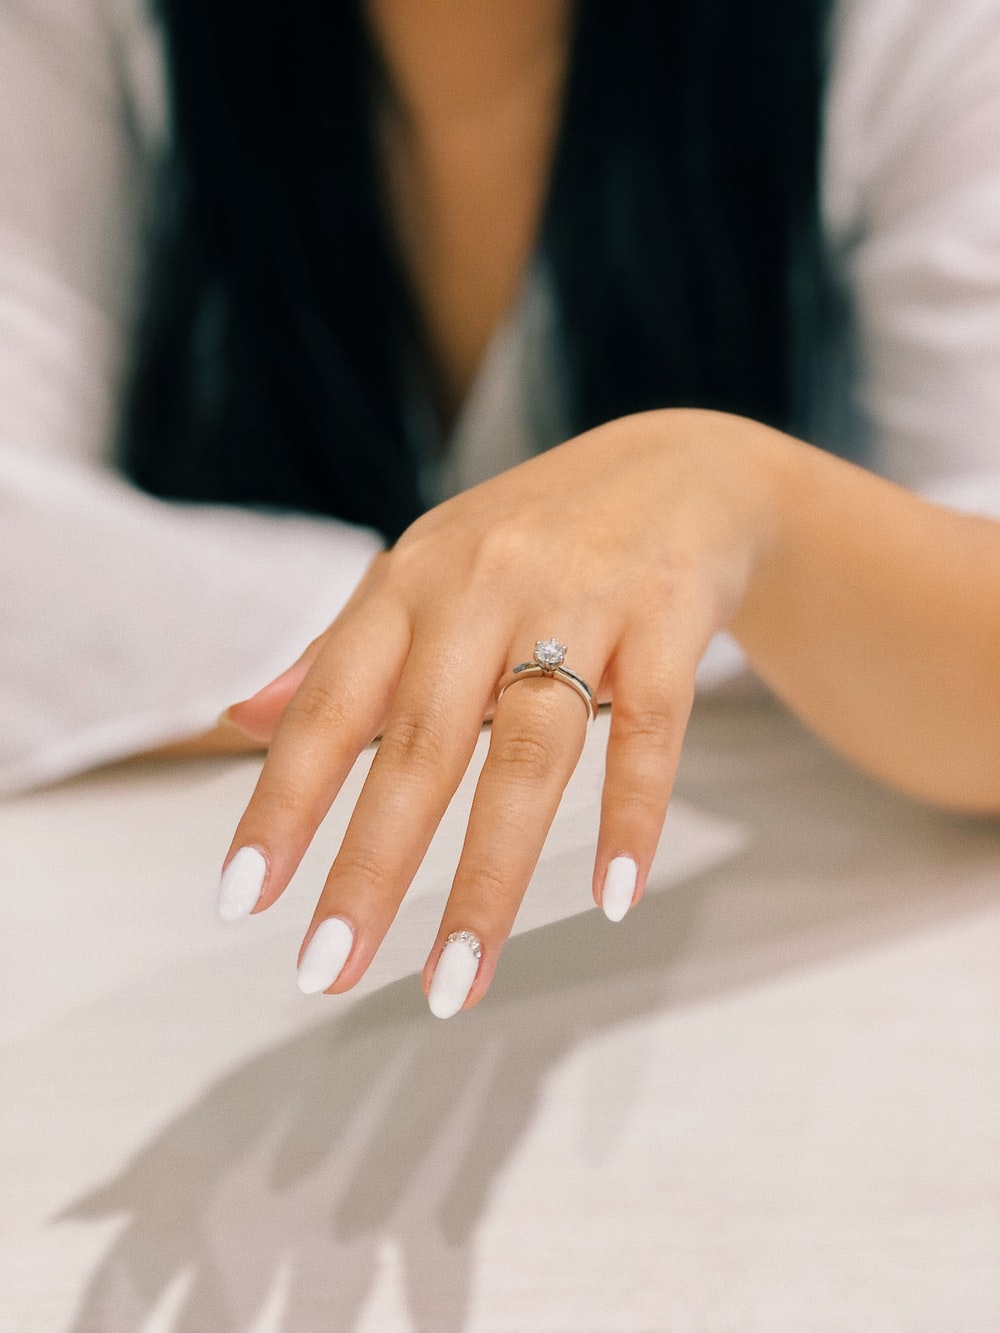 person with white nail polish on left fingers